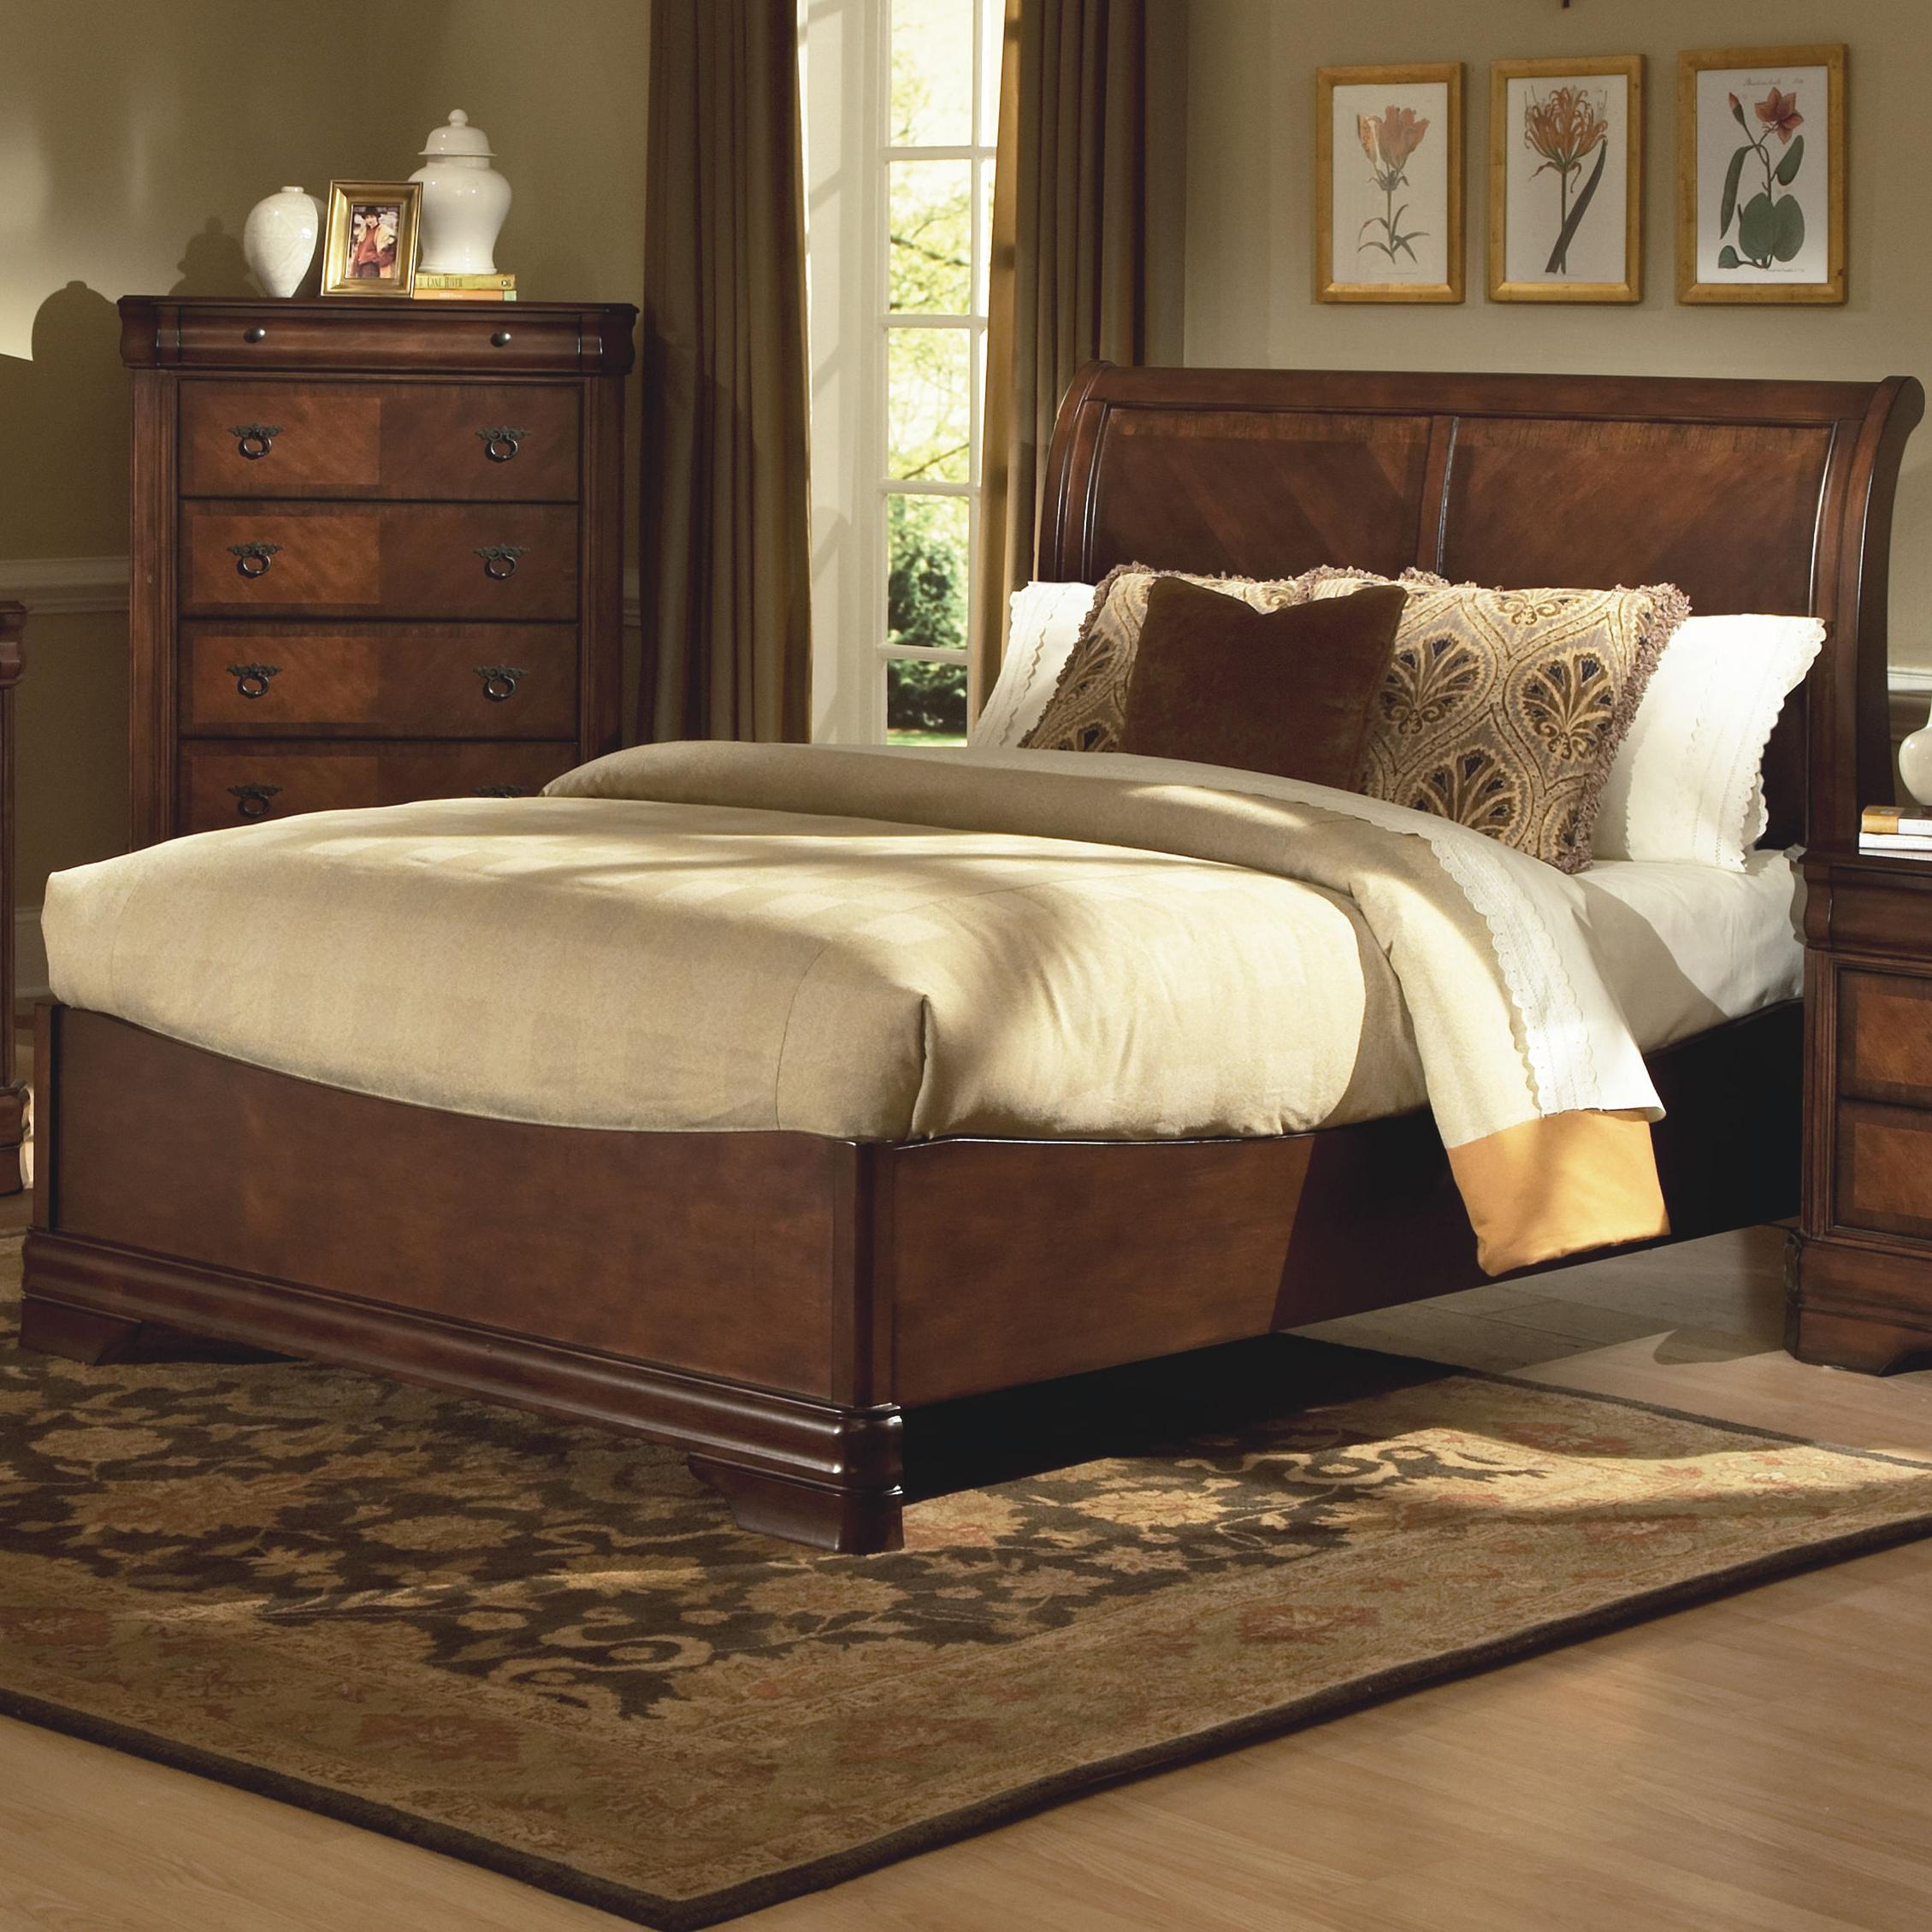 New Classic Sheridan Queen Bed - Item Number: 00-005-310+20+30